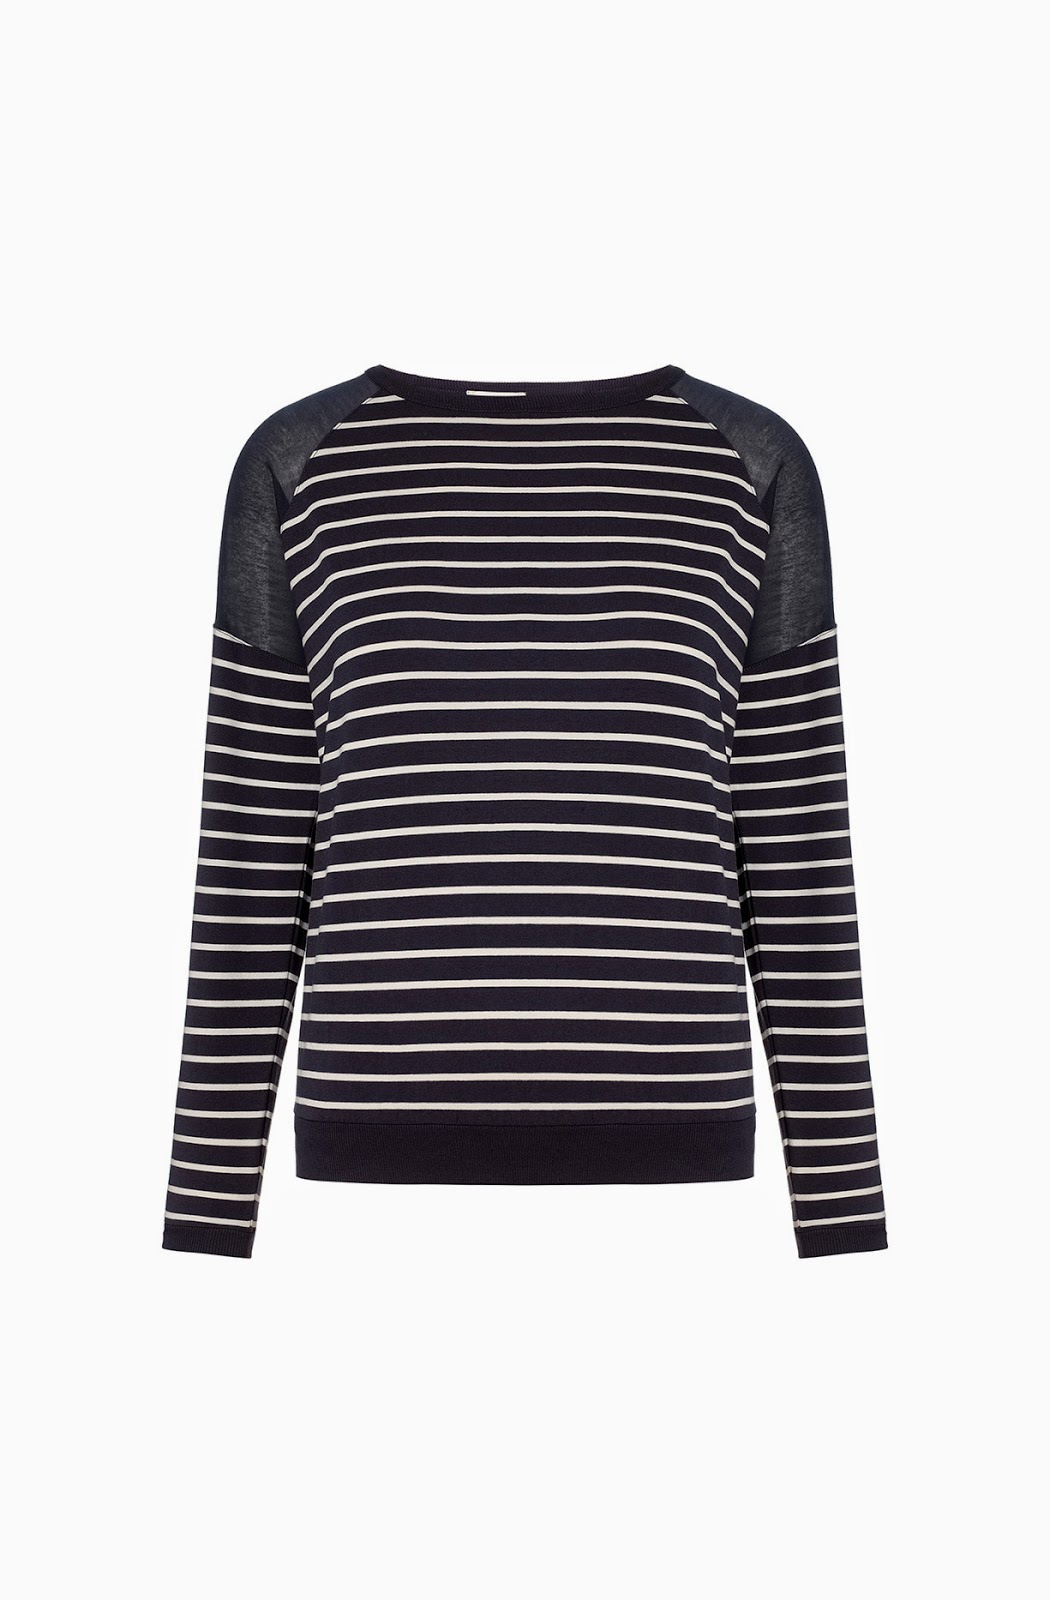 whistles stripe top